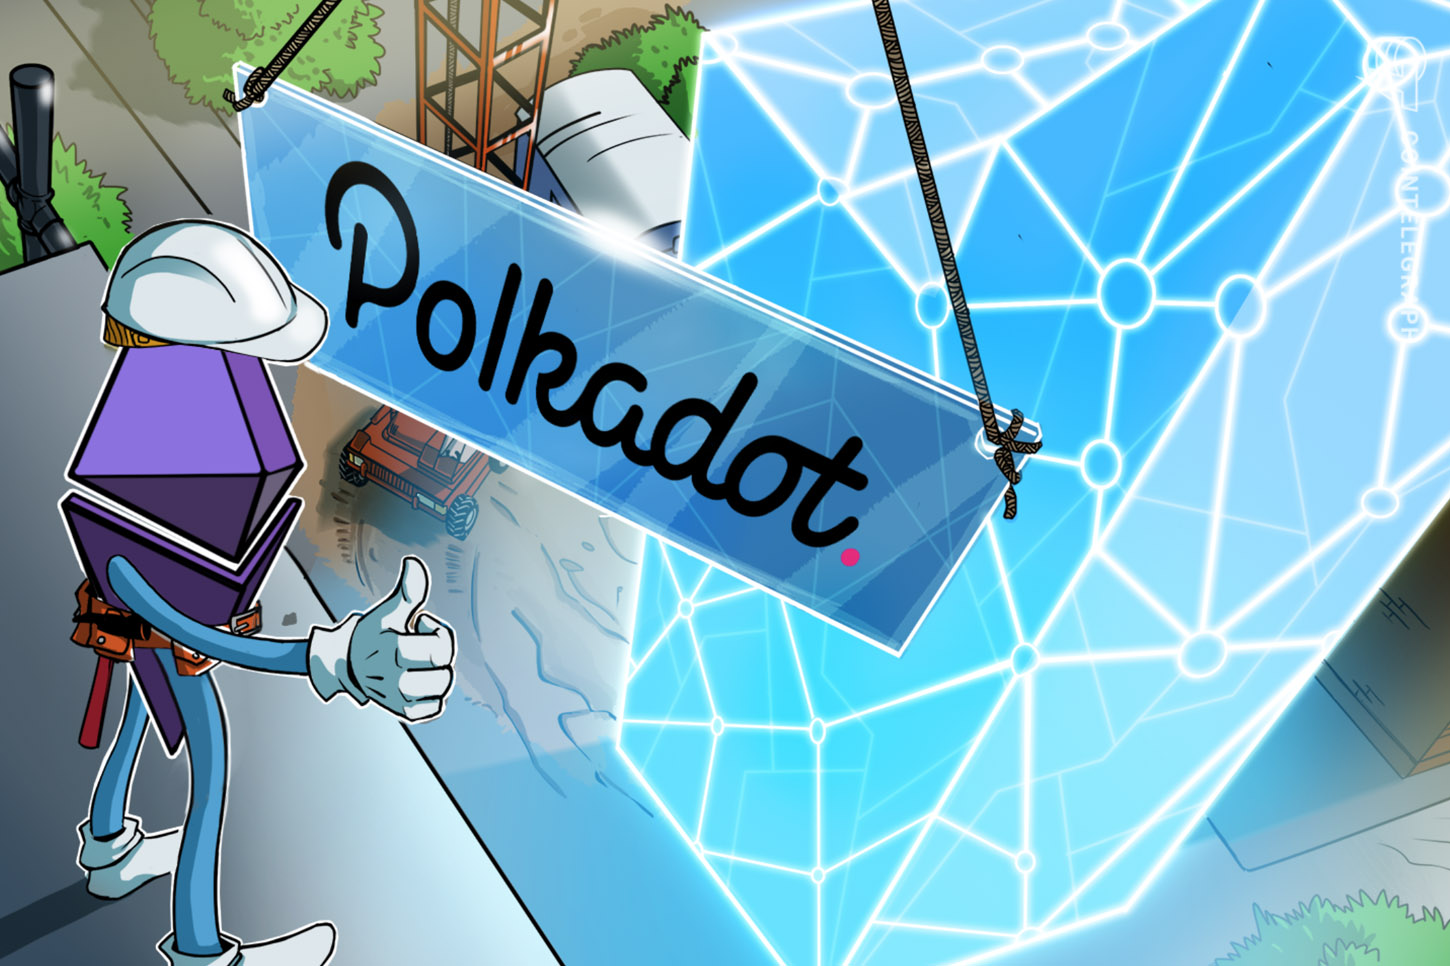 This <bold>project</bold> wants to recreate <bold>Ethereum</bold> on Polkadot